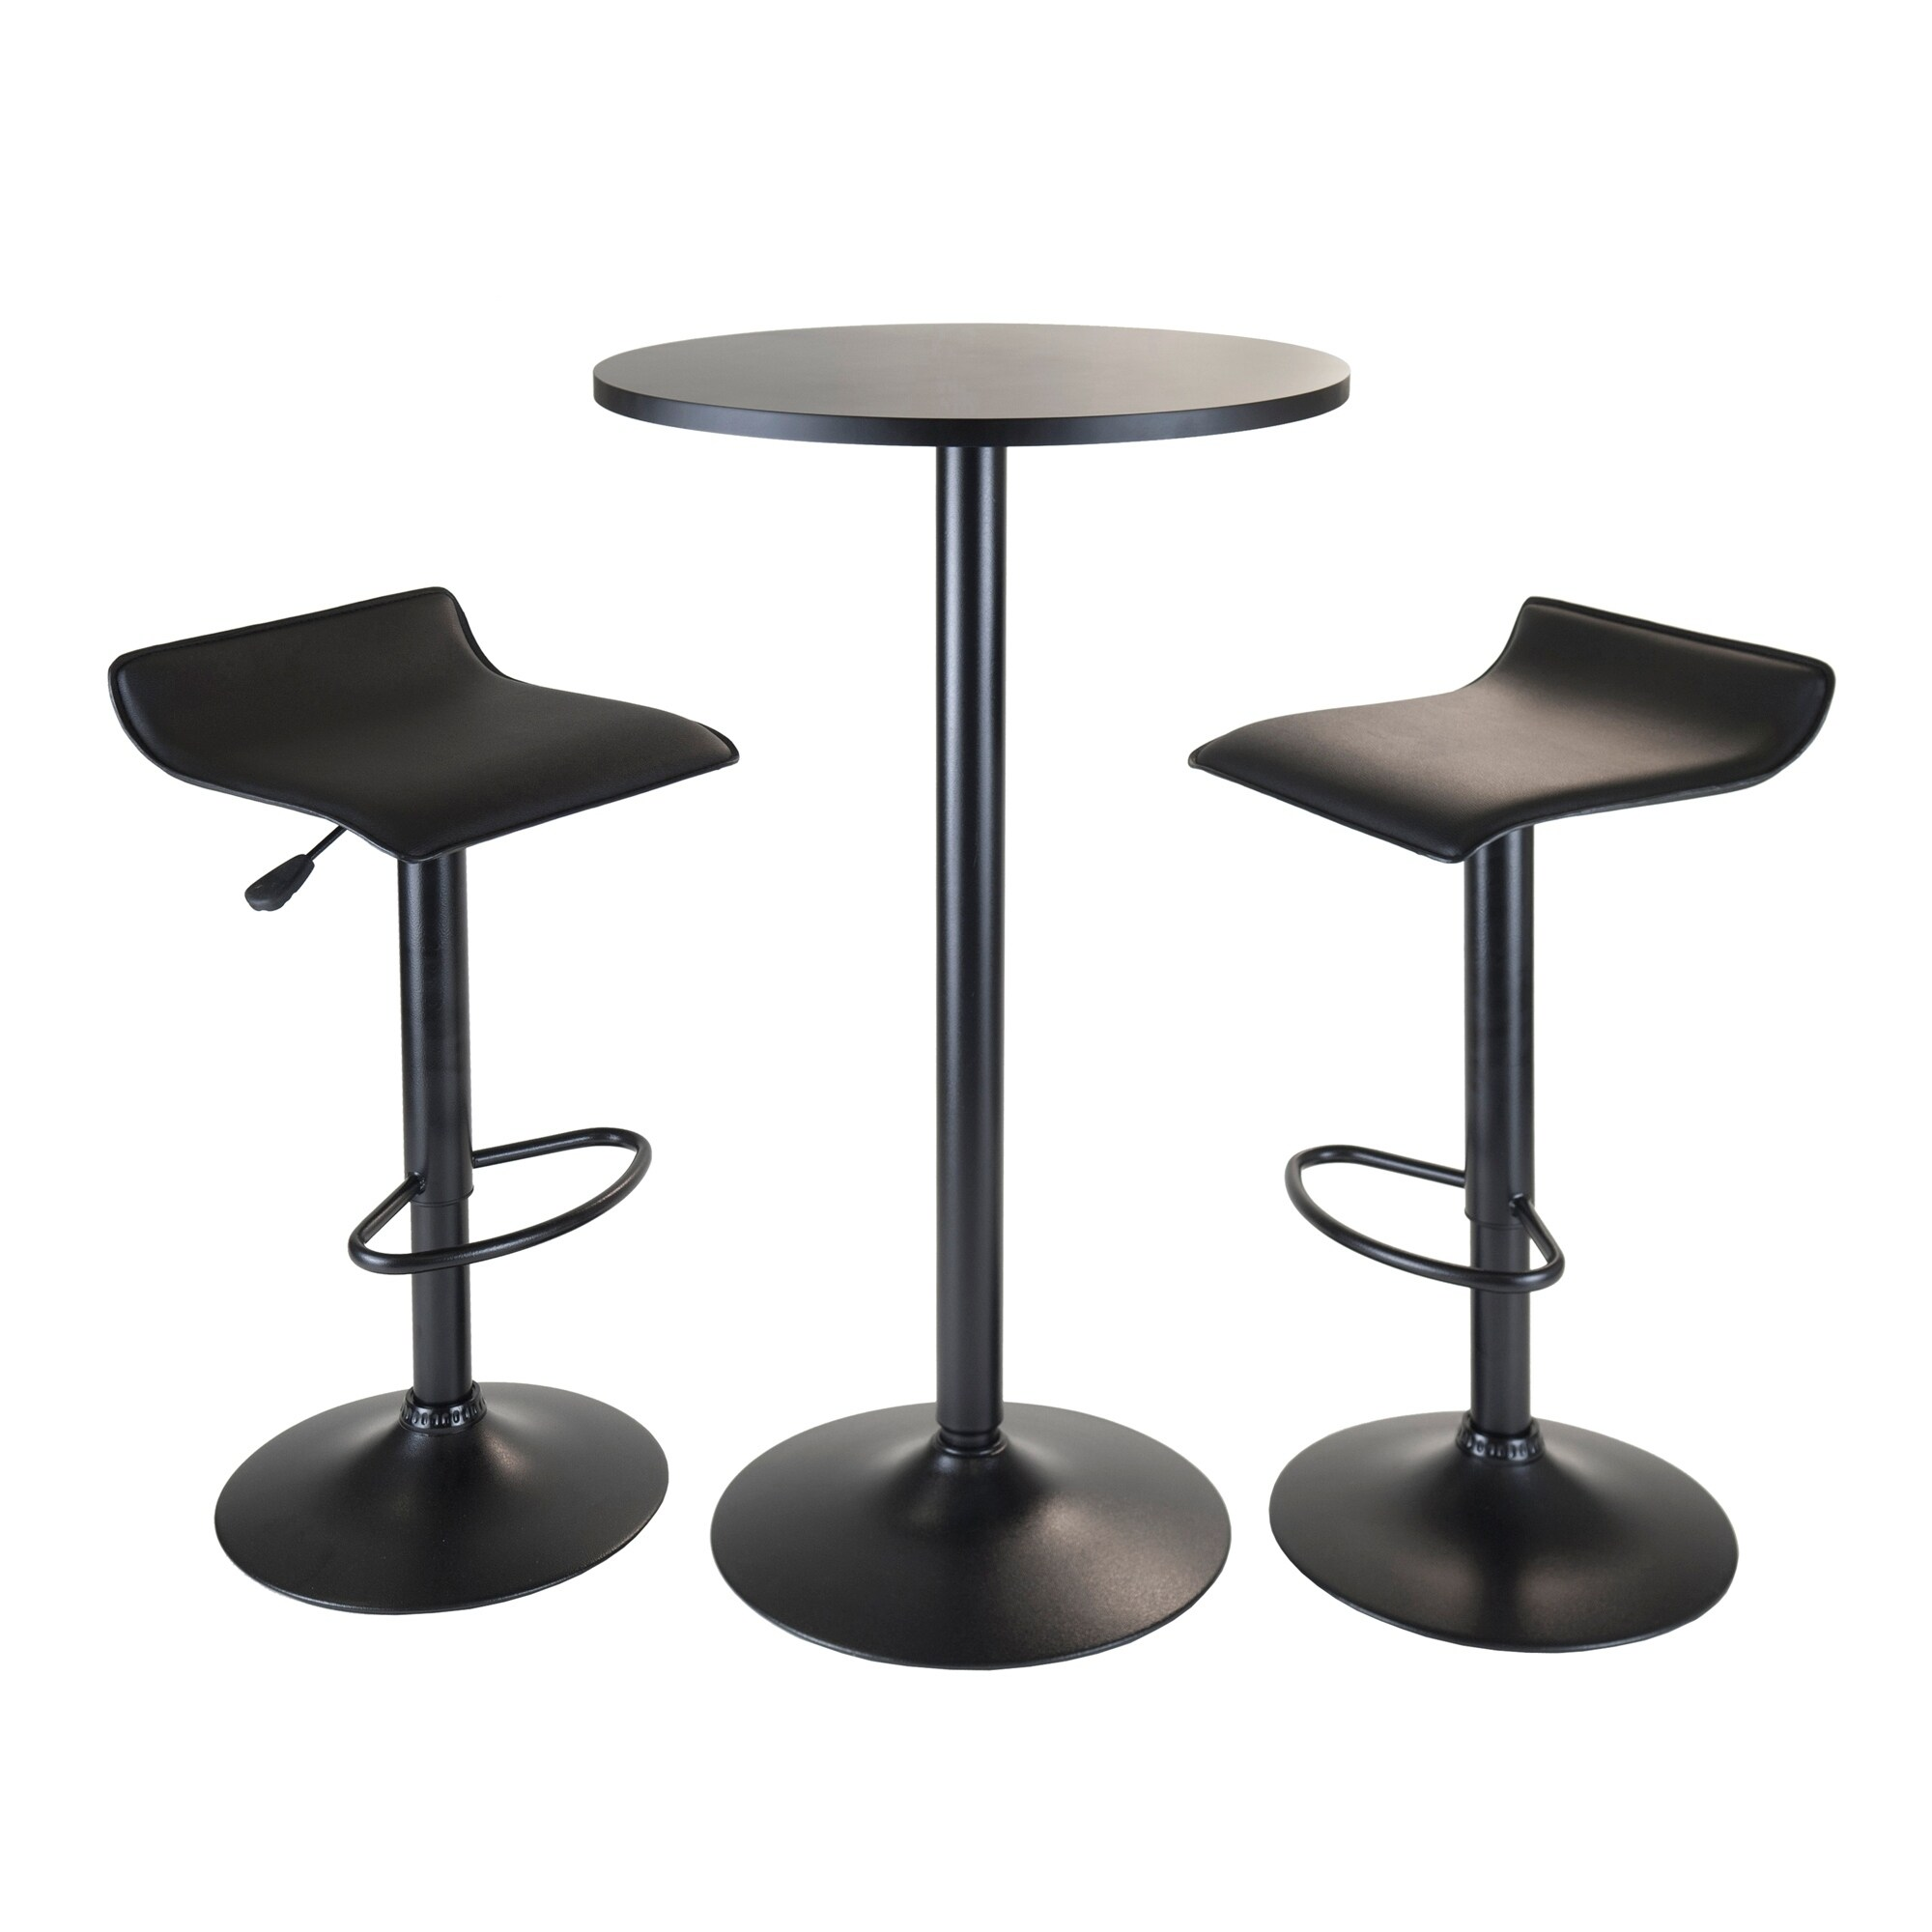 Surprising Obsidian 3Pc Pub Set Round Table With 2 Airlift Stools All Black Onthecornerstone Fun Painted Chair Ideas Images Onthecornerstoneorg